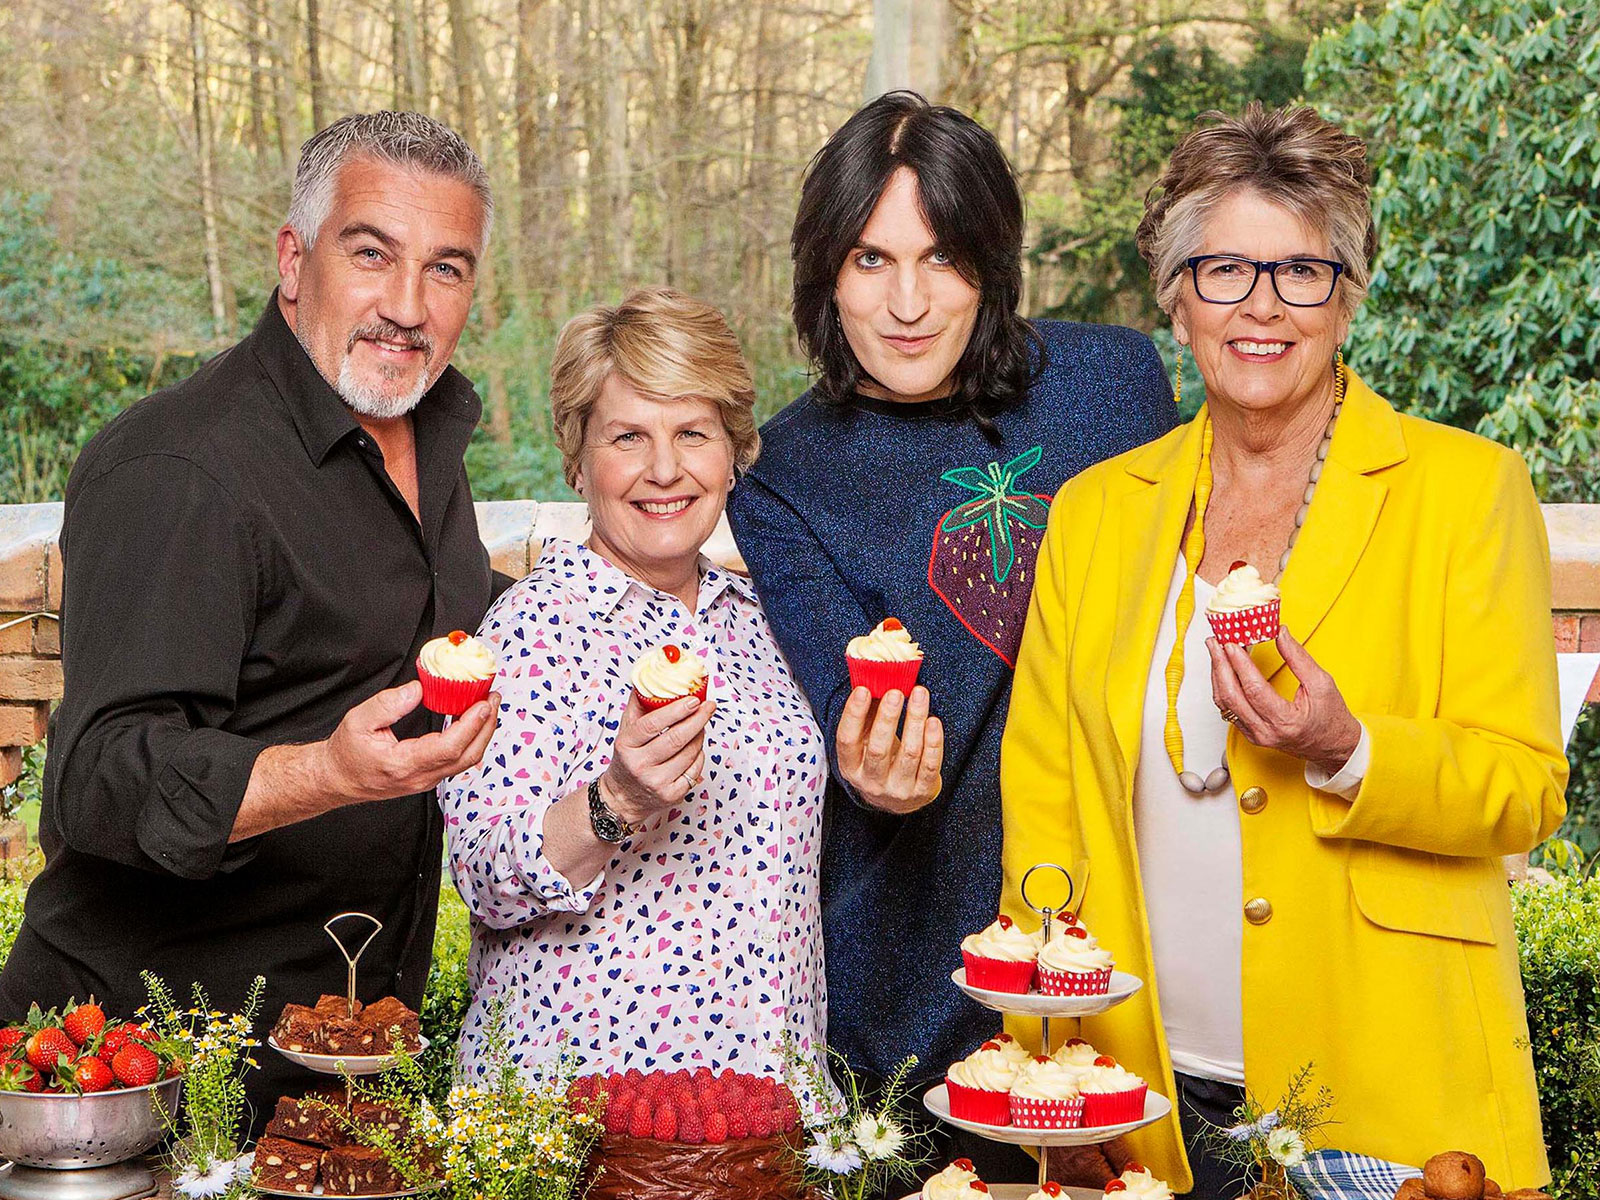 The New 'Great British Bake Off' Trailer Features Cookie Monster and a Beatles Soundtrack